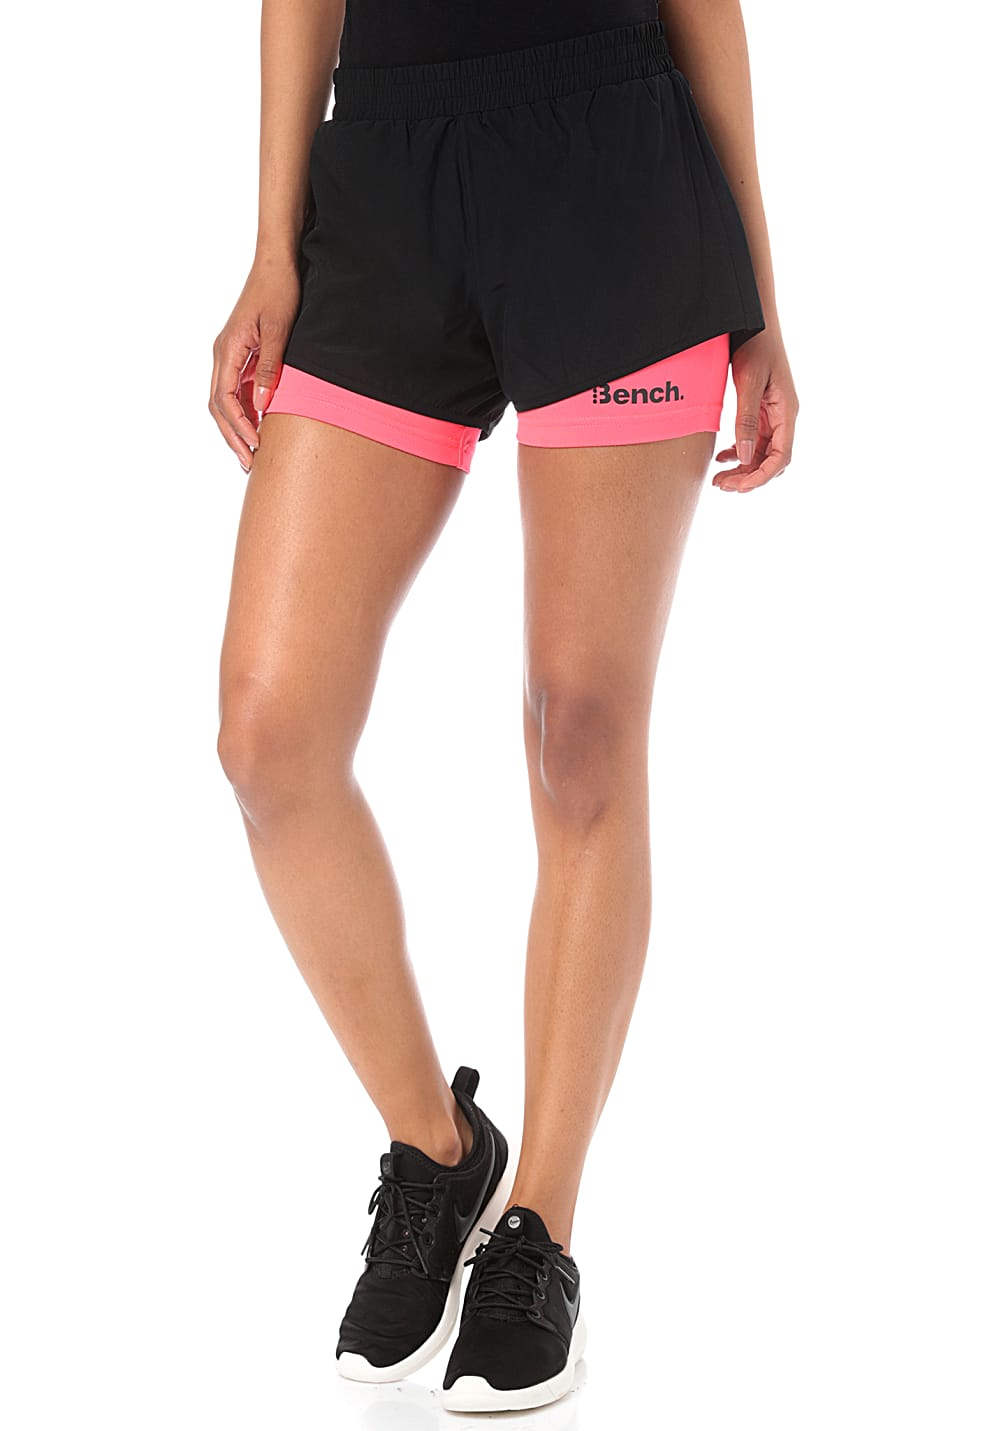 Hosen - Bench. Layered Shorts für Damen Schwarz  - Onlineshop Planet Sports